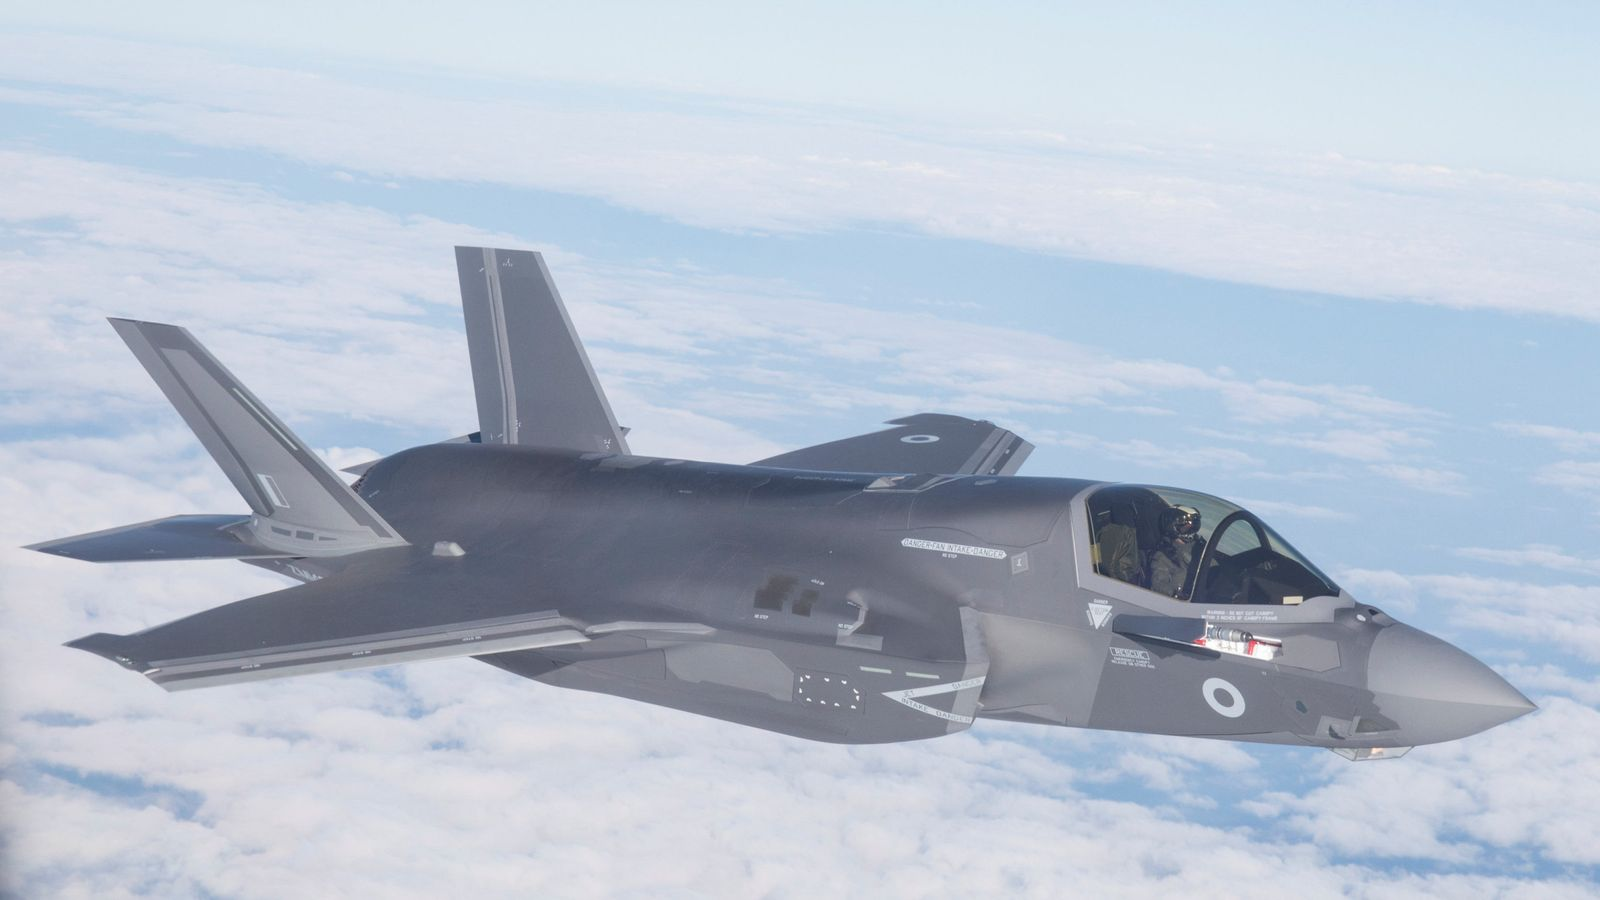 New RAF F35 jets to be sent to Cyprus base after being declared 'combat ready'